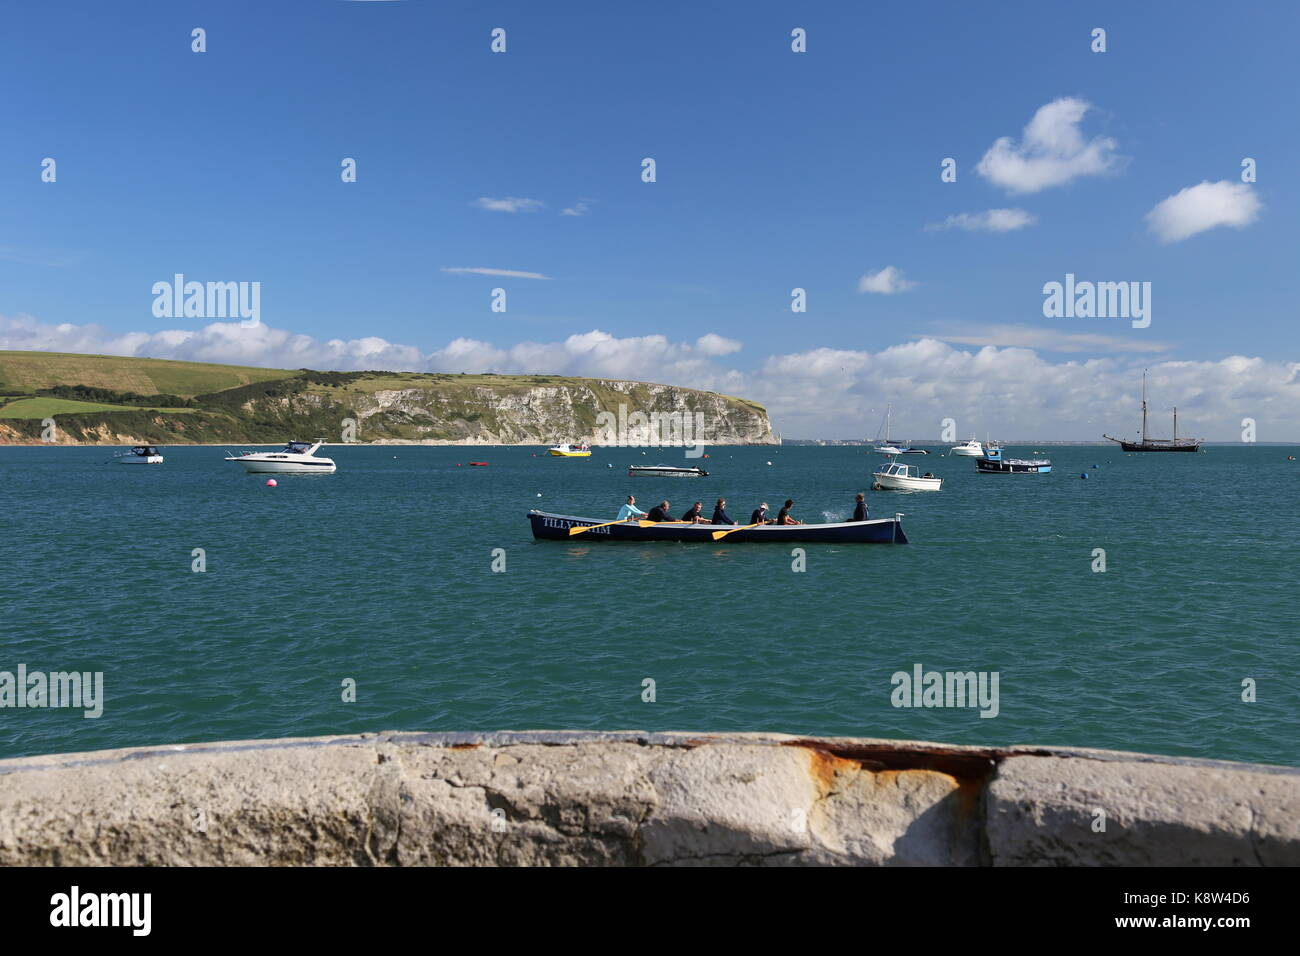 Swanage Sea Rowing Club 'Tilly Whim' pilot gig in Swanage Bay, Swanage, Isle of Purbeck, Dorset, England, - Stock Image